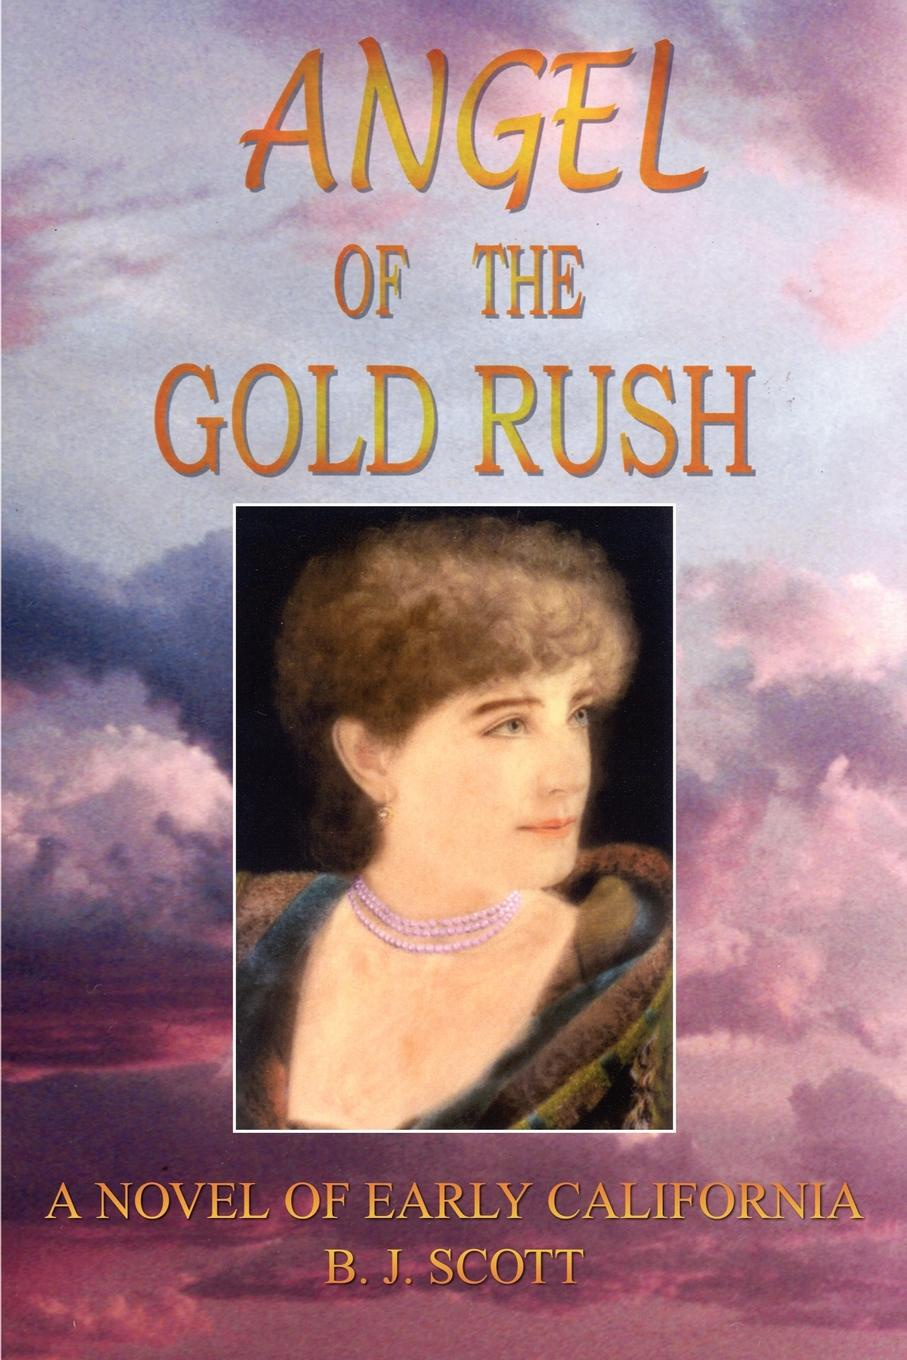 B. J. Scott ANGEL OF THE GOLD RUSH. A NOVEL OF EARLY CALIFORNIA what was the gold rush